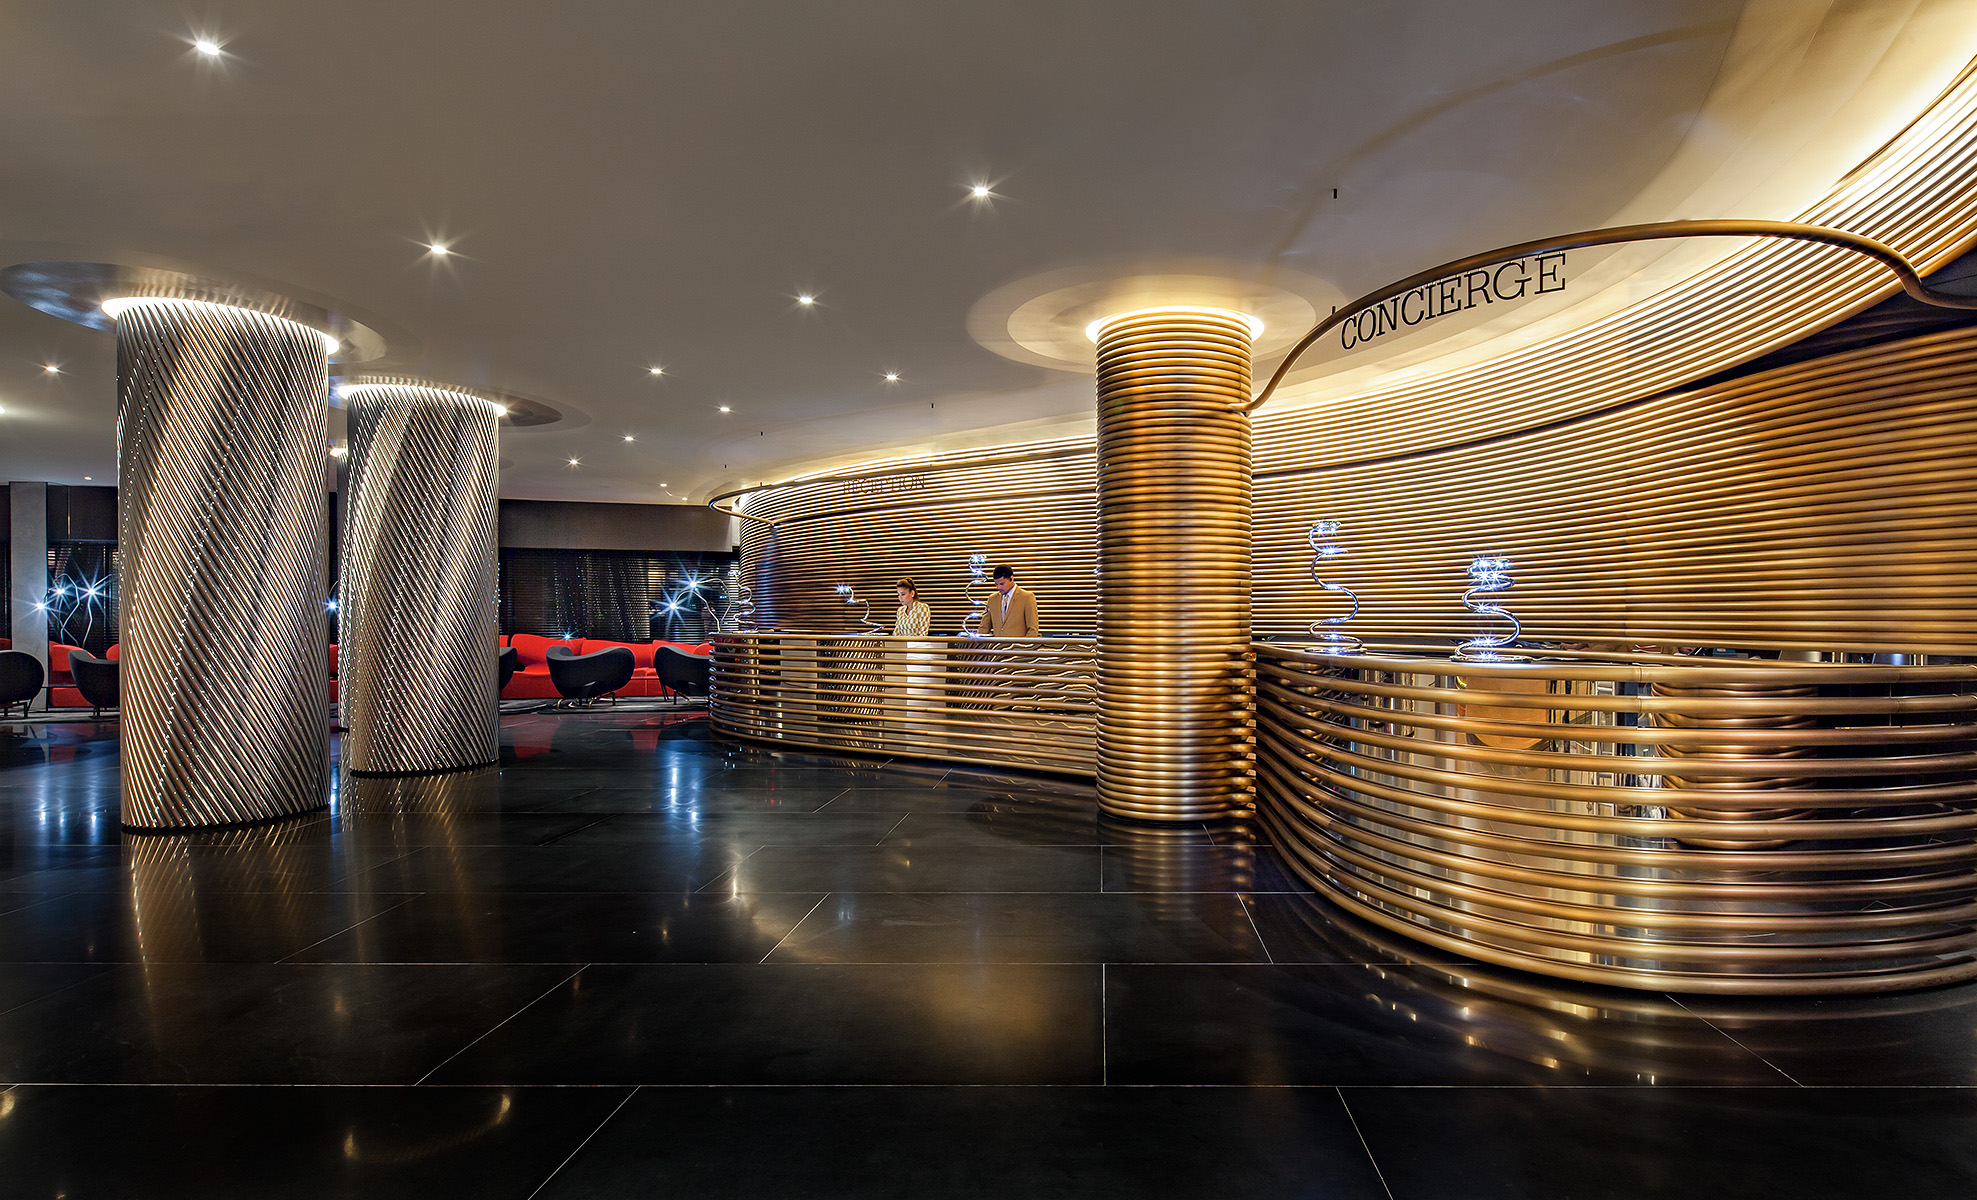 The Watergate HotelWashington, DCDesign:  Ron Arad. LondonEuroCapital